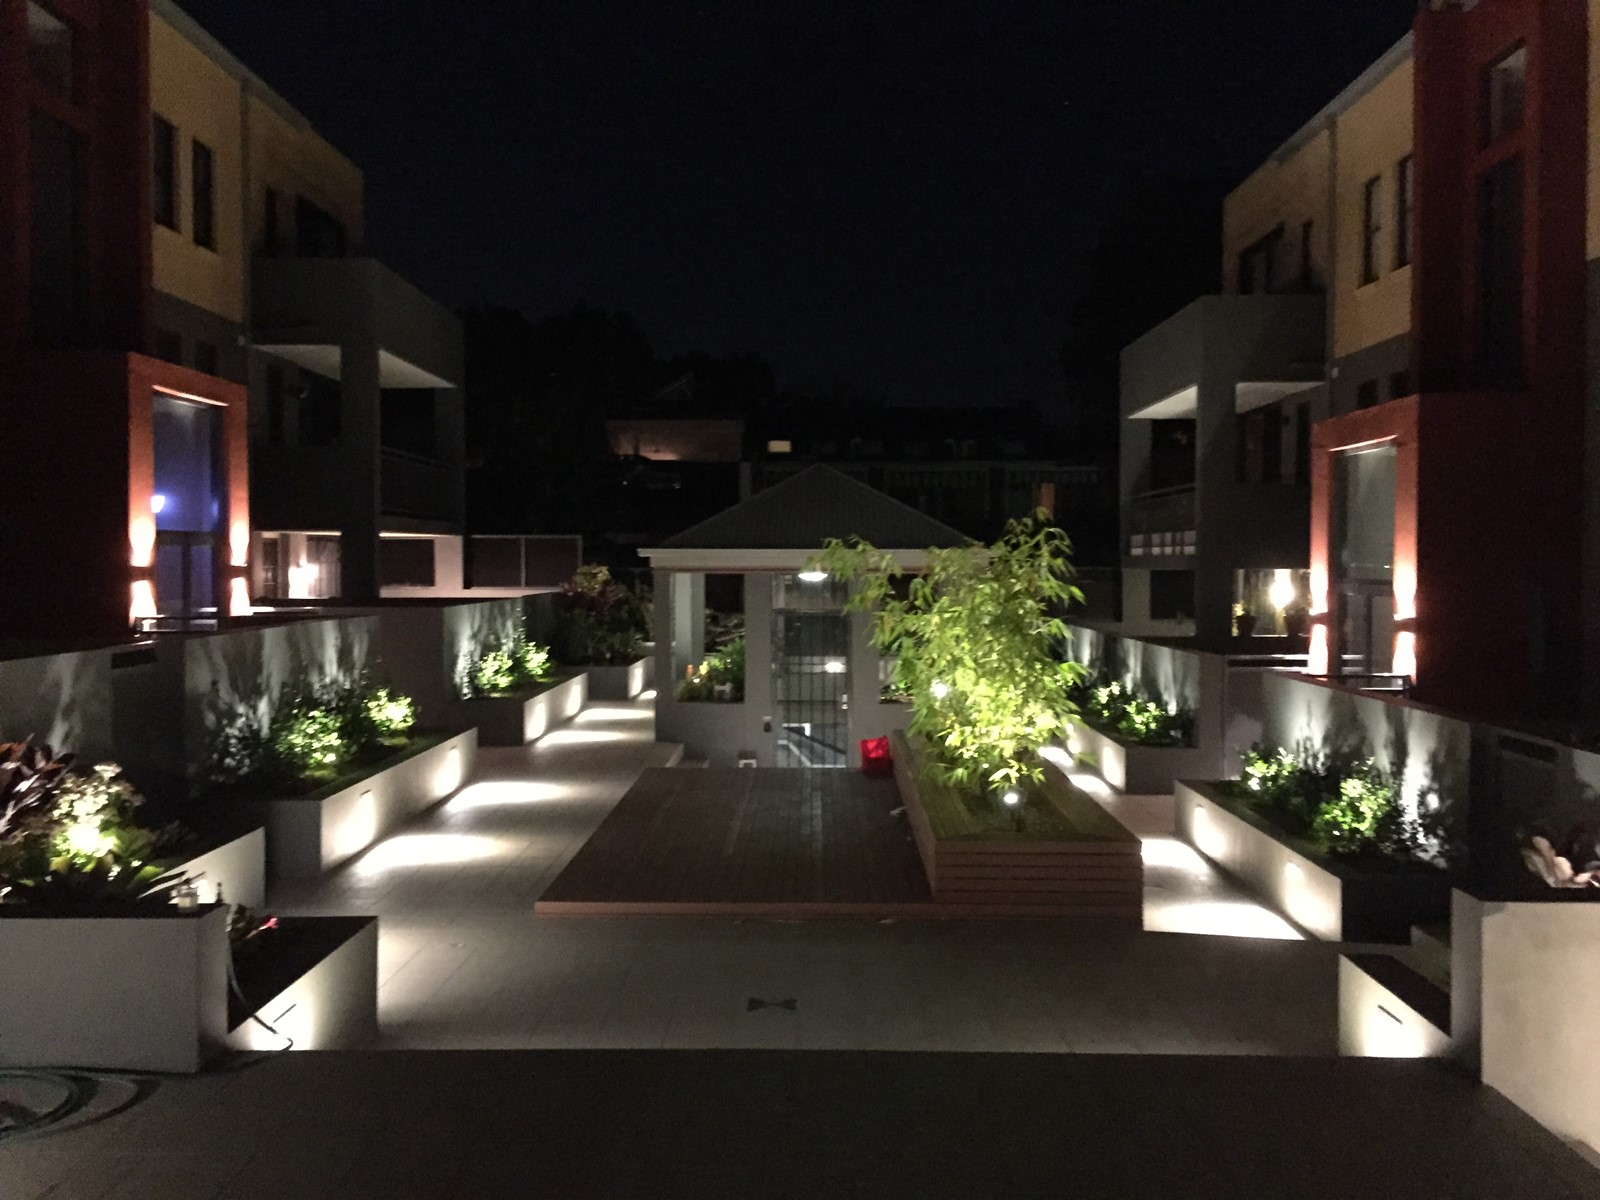 Landscape garden night lighting